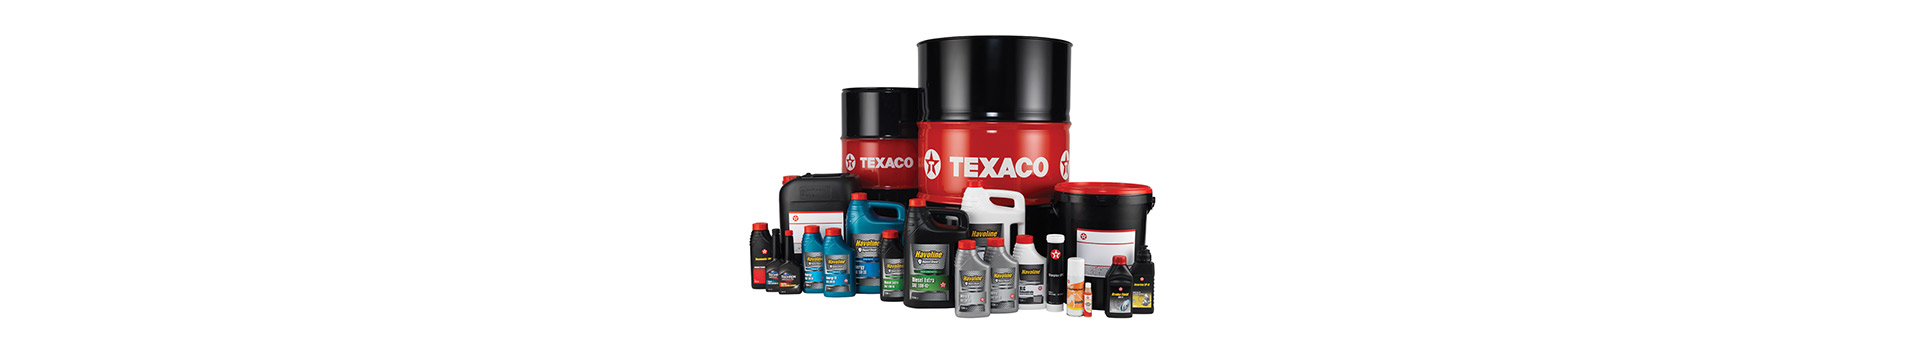 Specialized lubricants